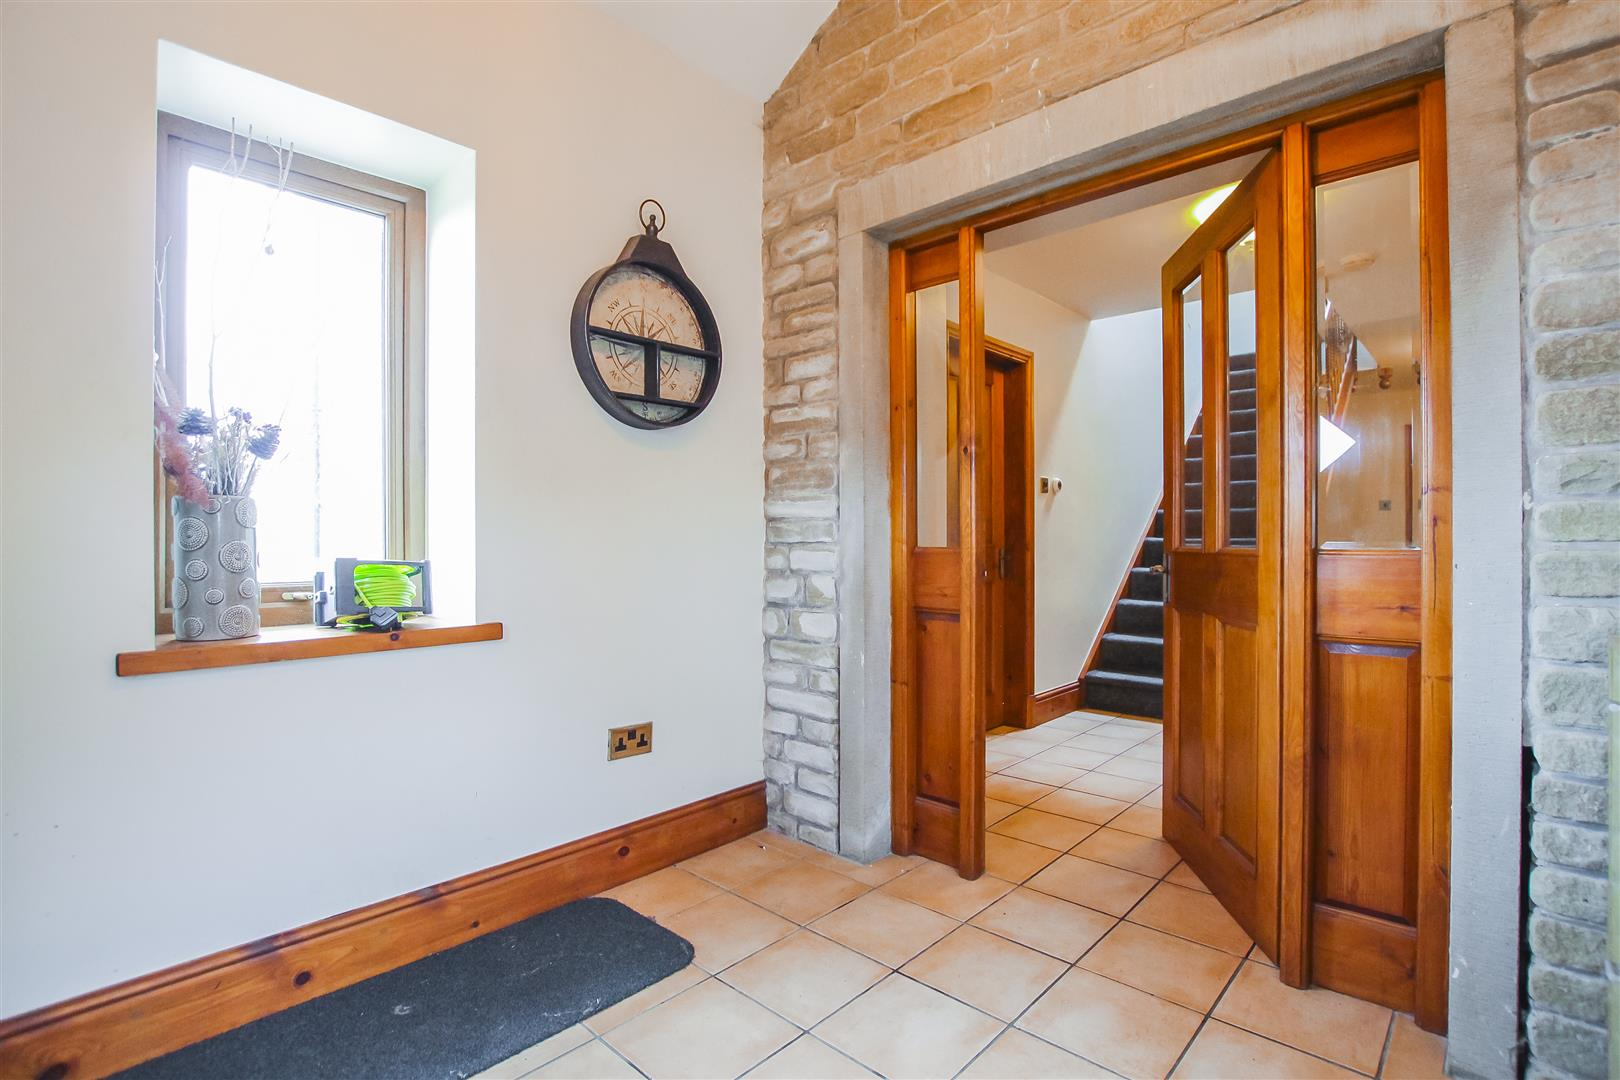 5 Bedroom Barn Conversion For Sale - Image 7